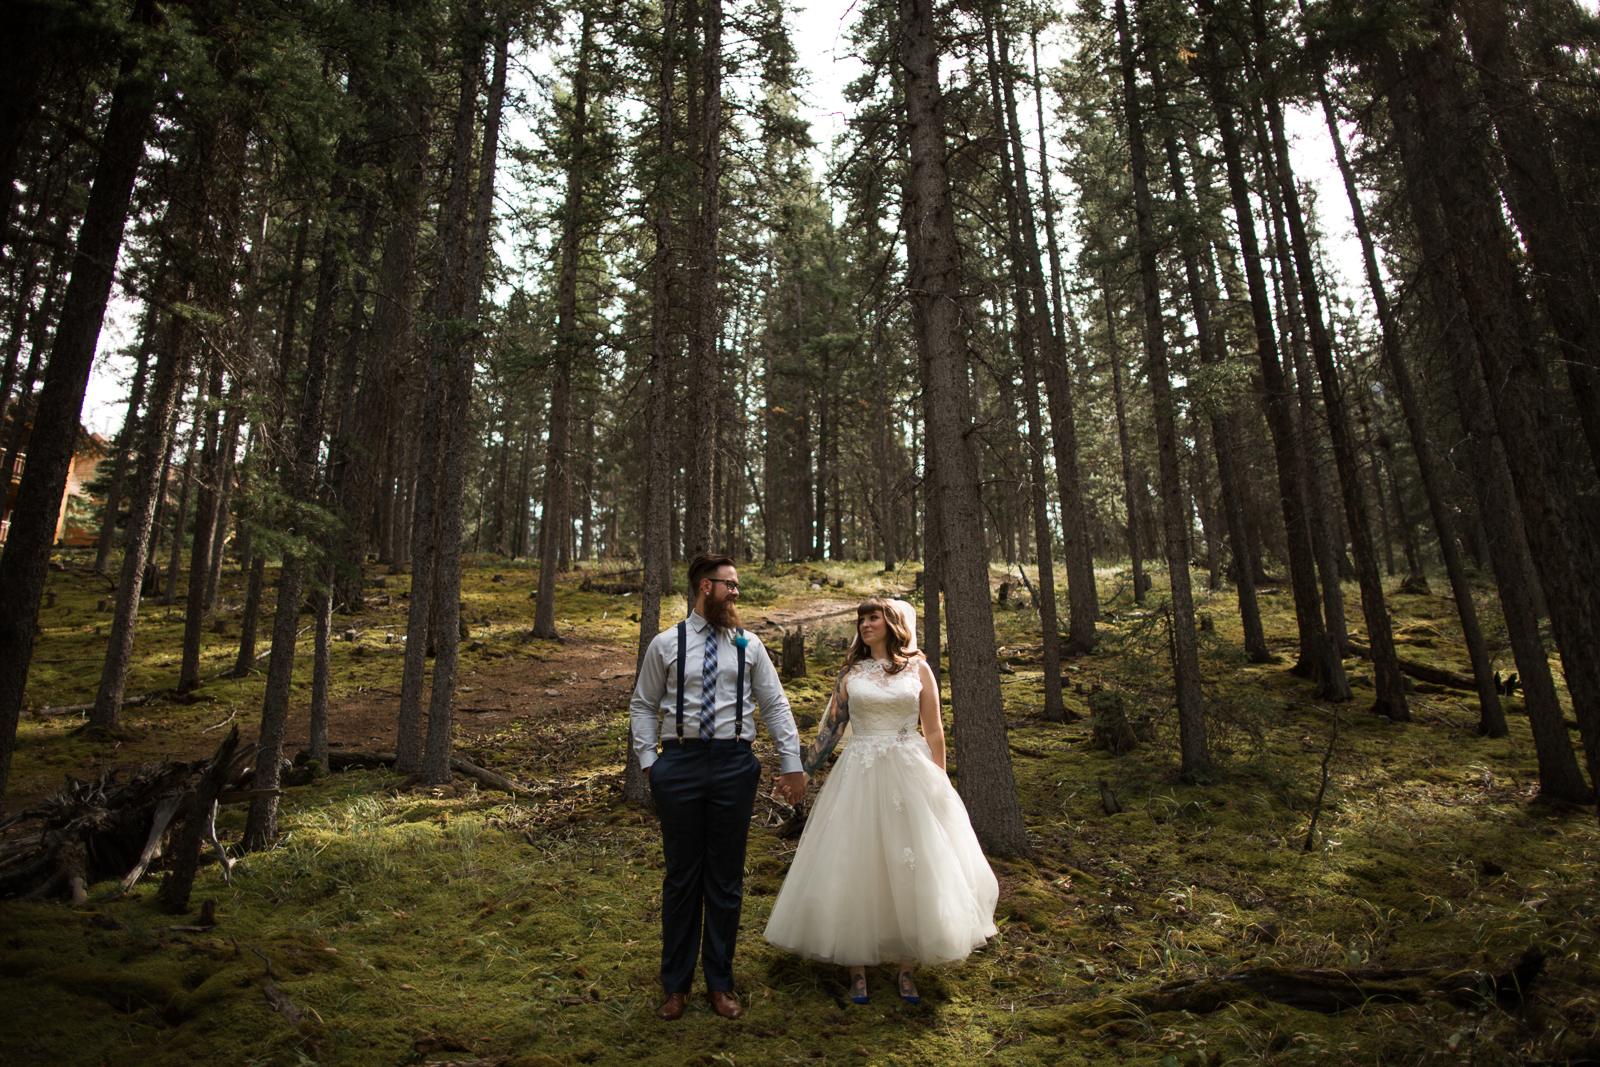 32-willow_and_wolf_photography_stephanie_and_kyle_banff_wedding_blogatp_7698